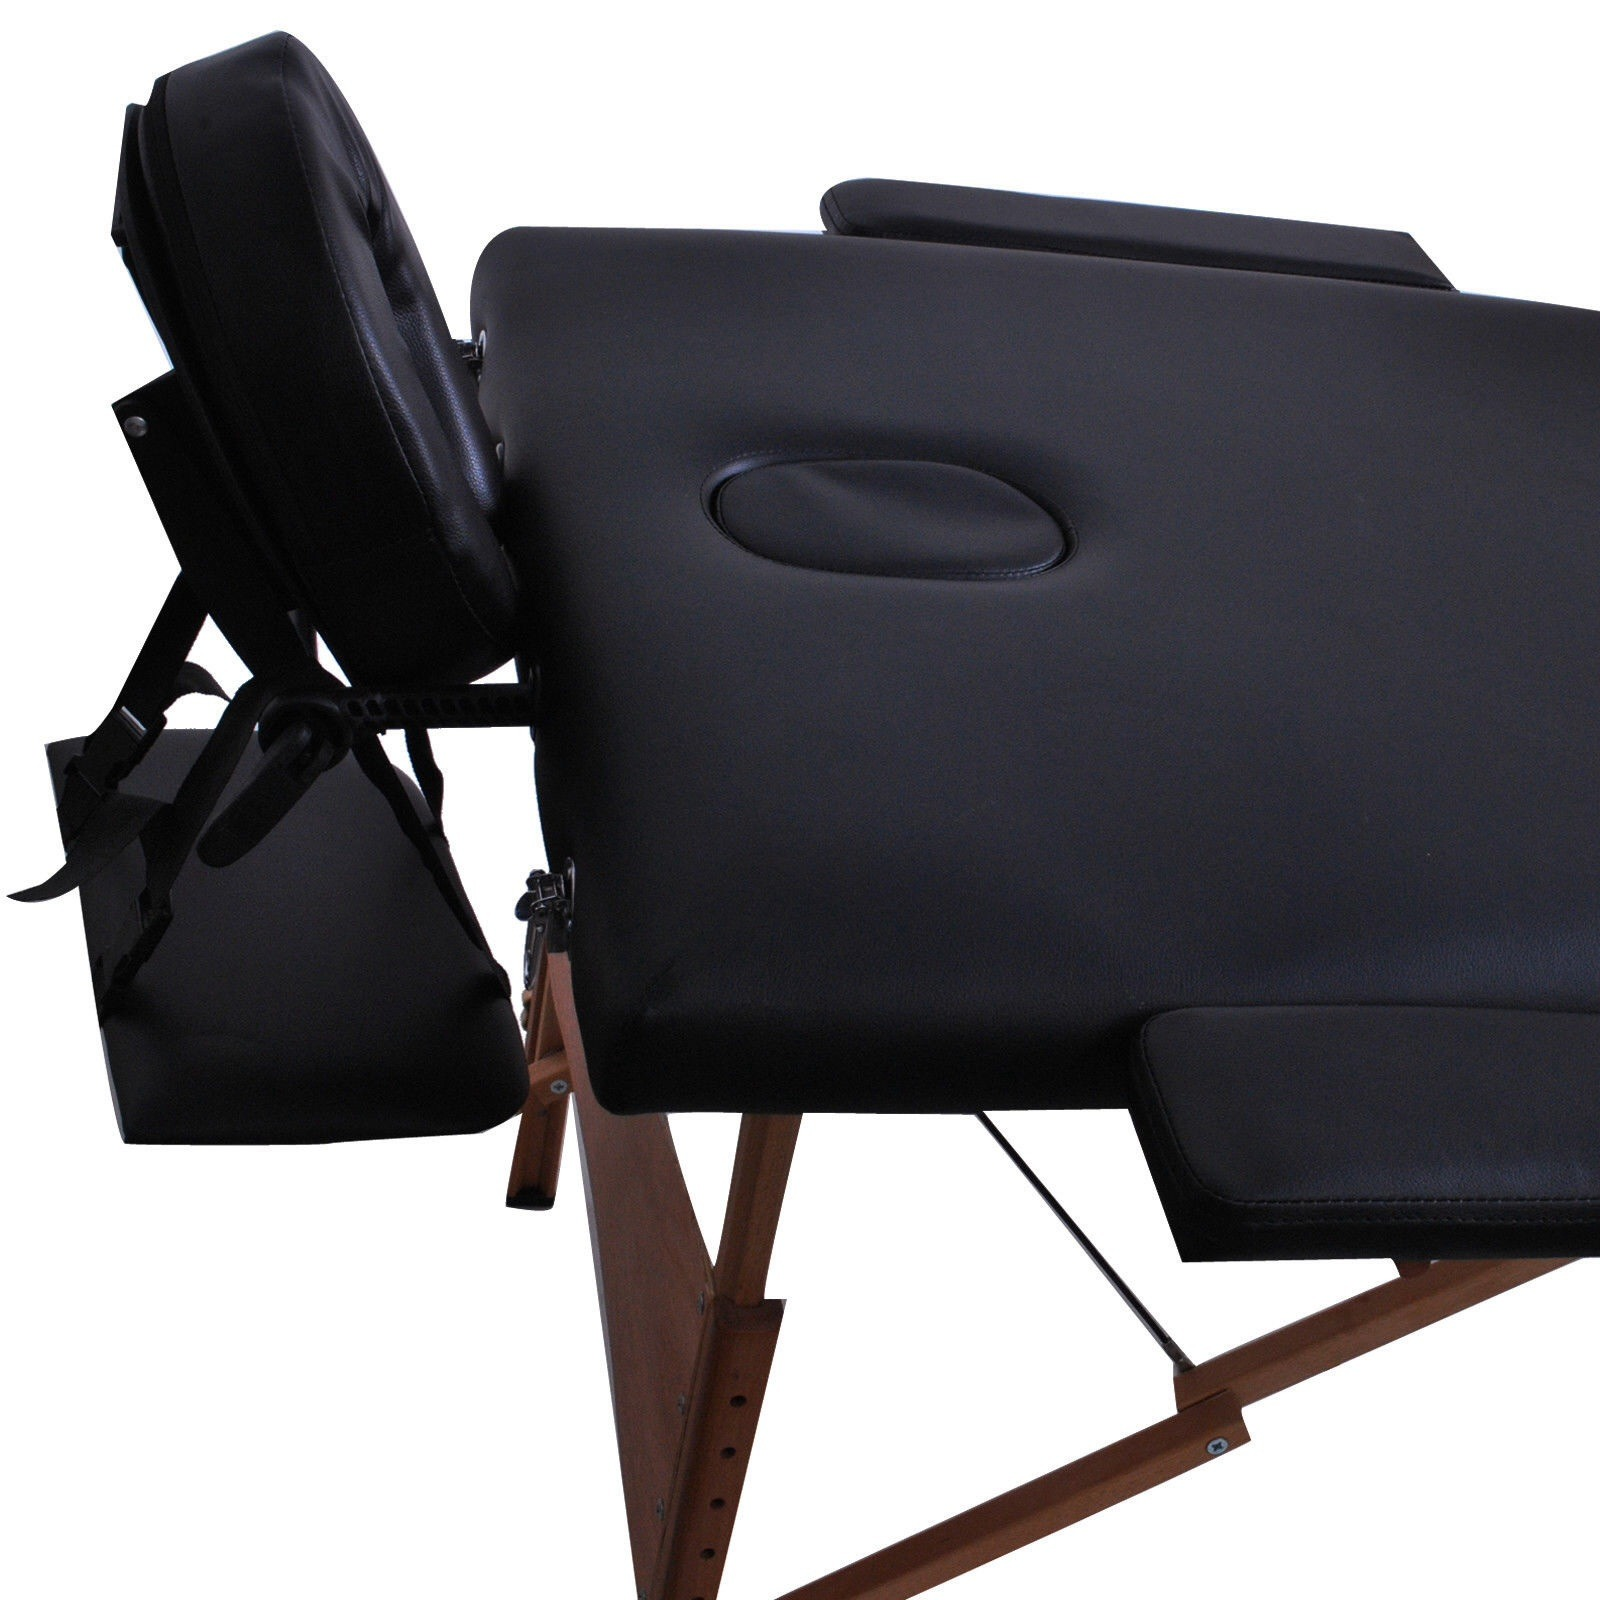 "New 84""L Portable Massage Table Facial SPA Bed Tattoo w/Free Carry Case Black"